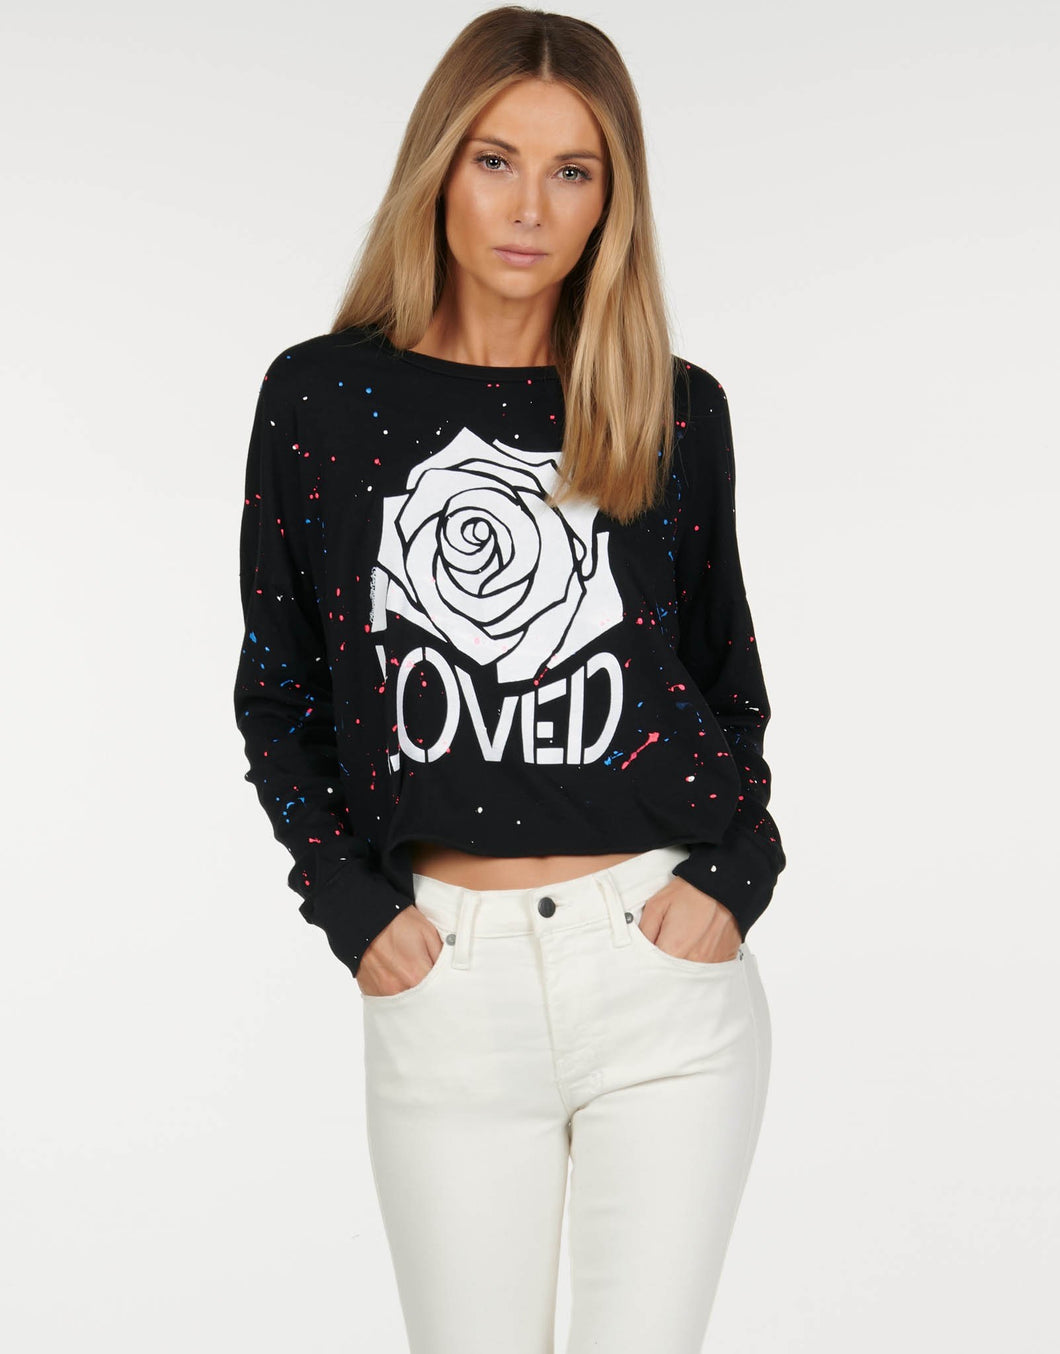 Lori Loved Rose LS Crop Tee